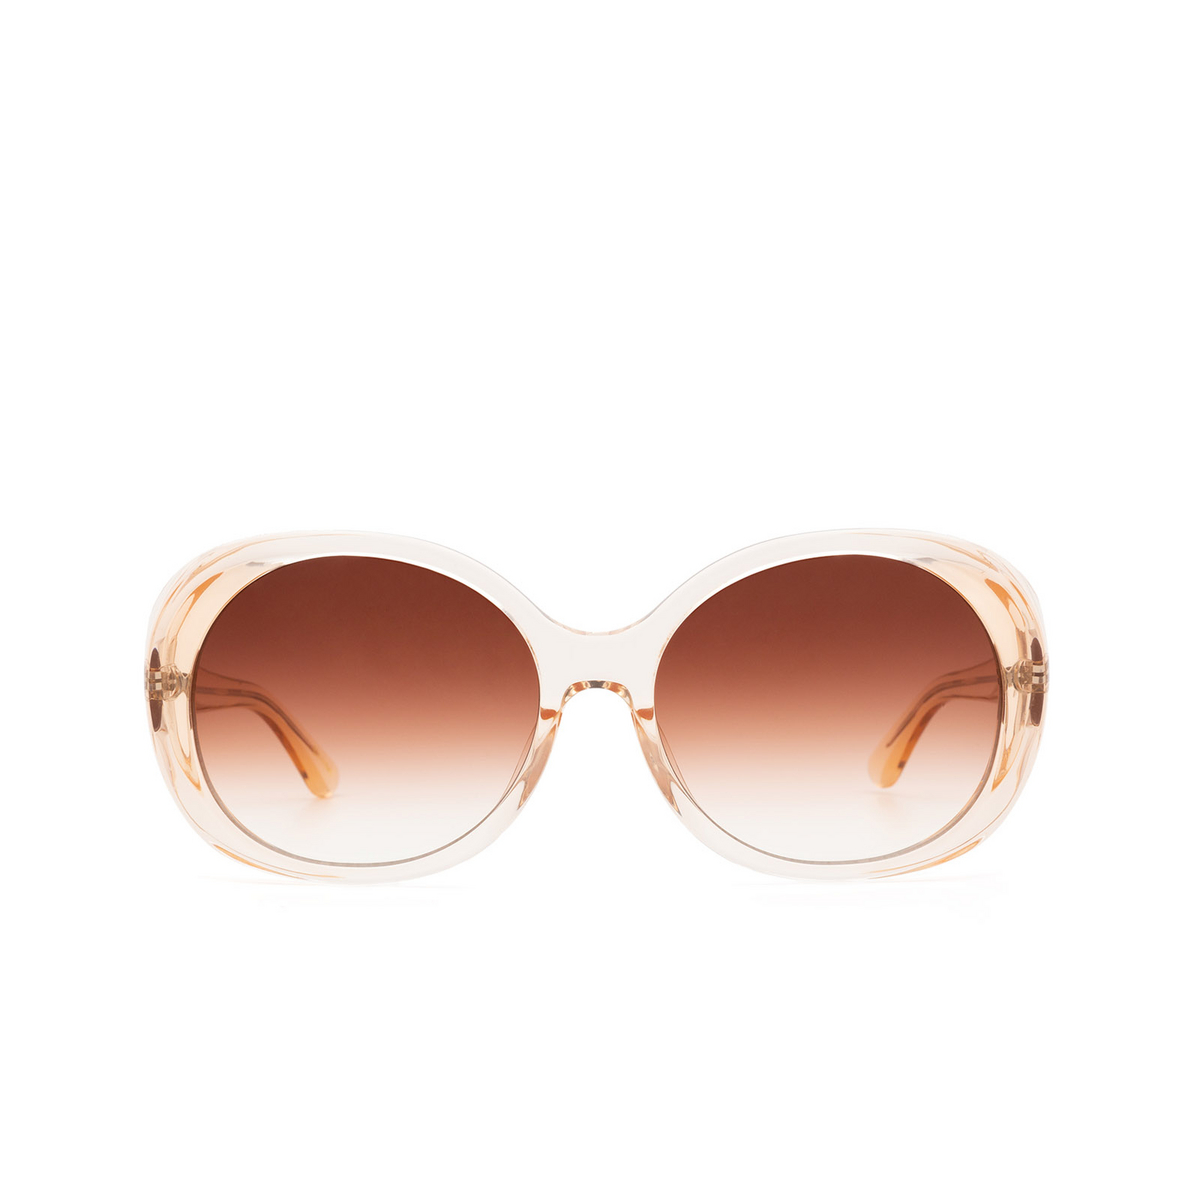 Chimi® Butterfly Sunglasses: Voyage Round color Fawn - front view.